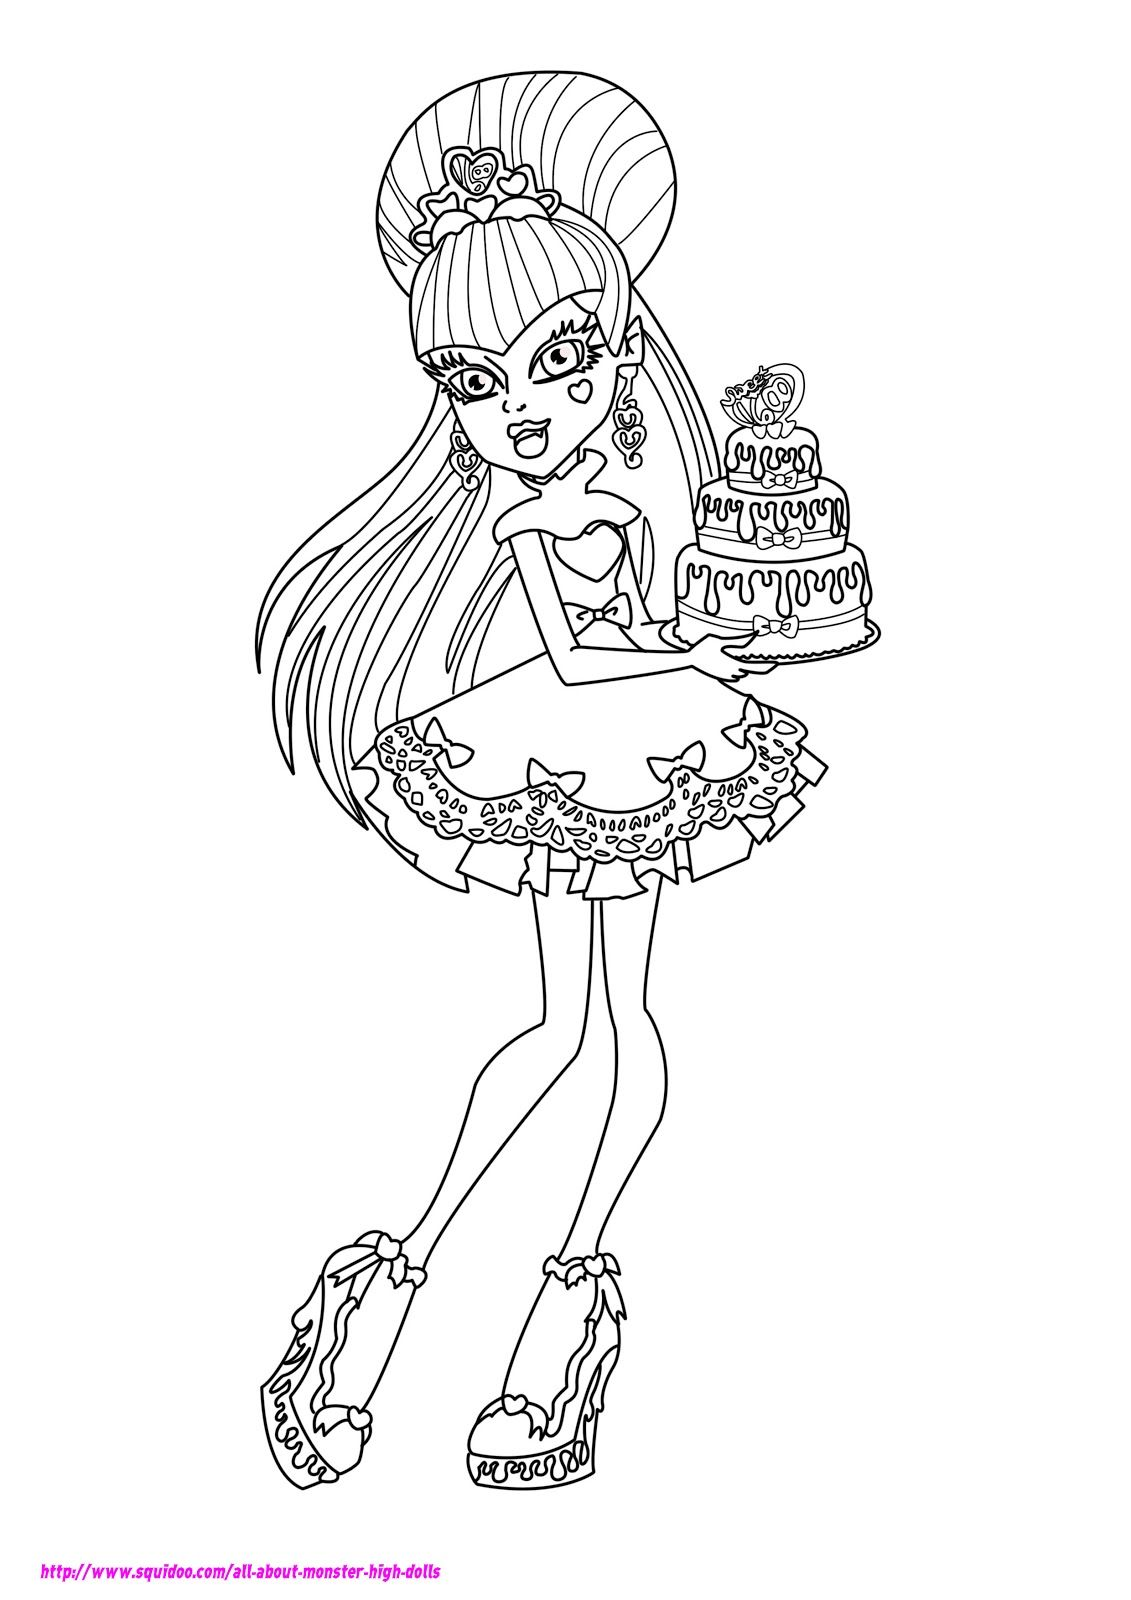 http://www.drodd.com/images8/monster-high-coloring-pages7.jpg ...